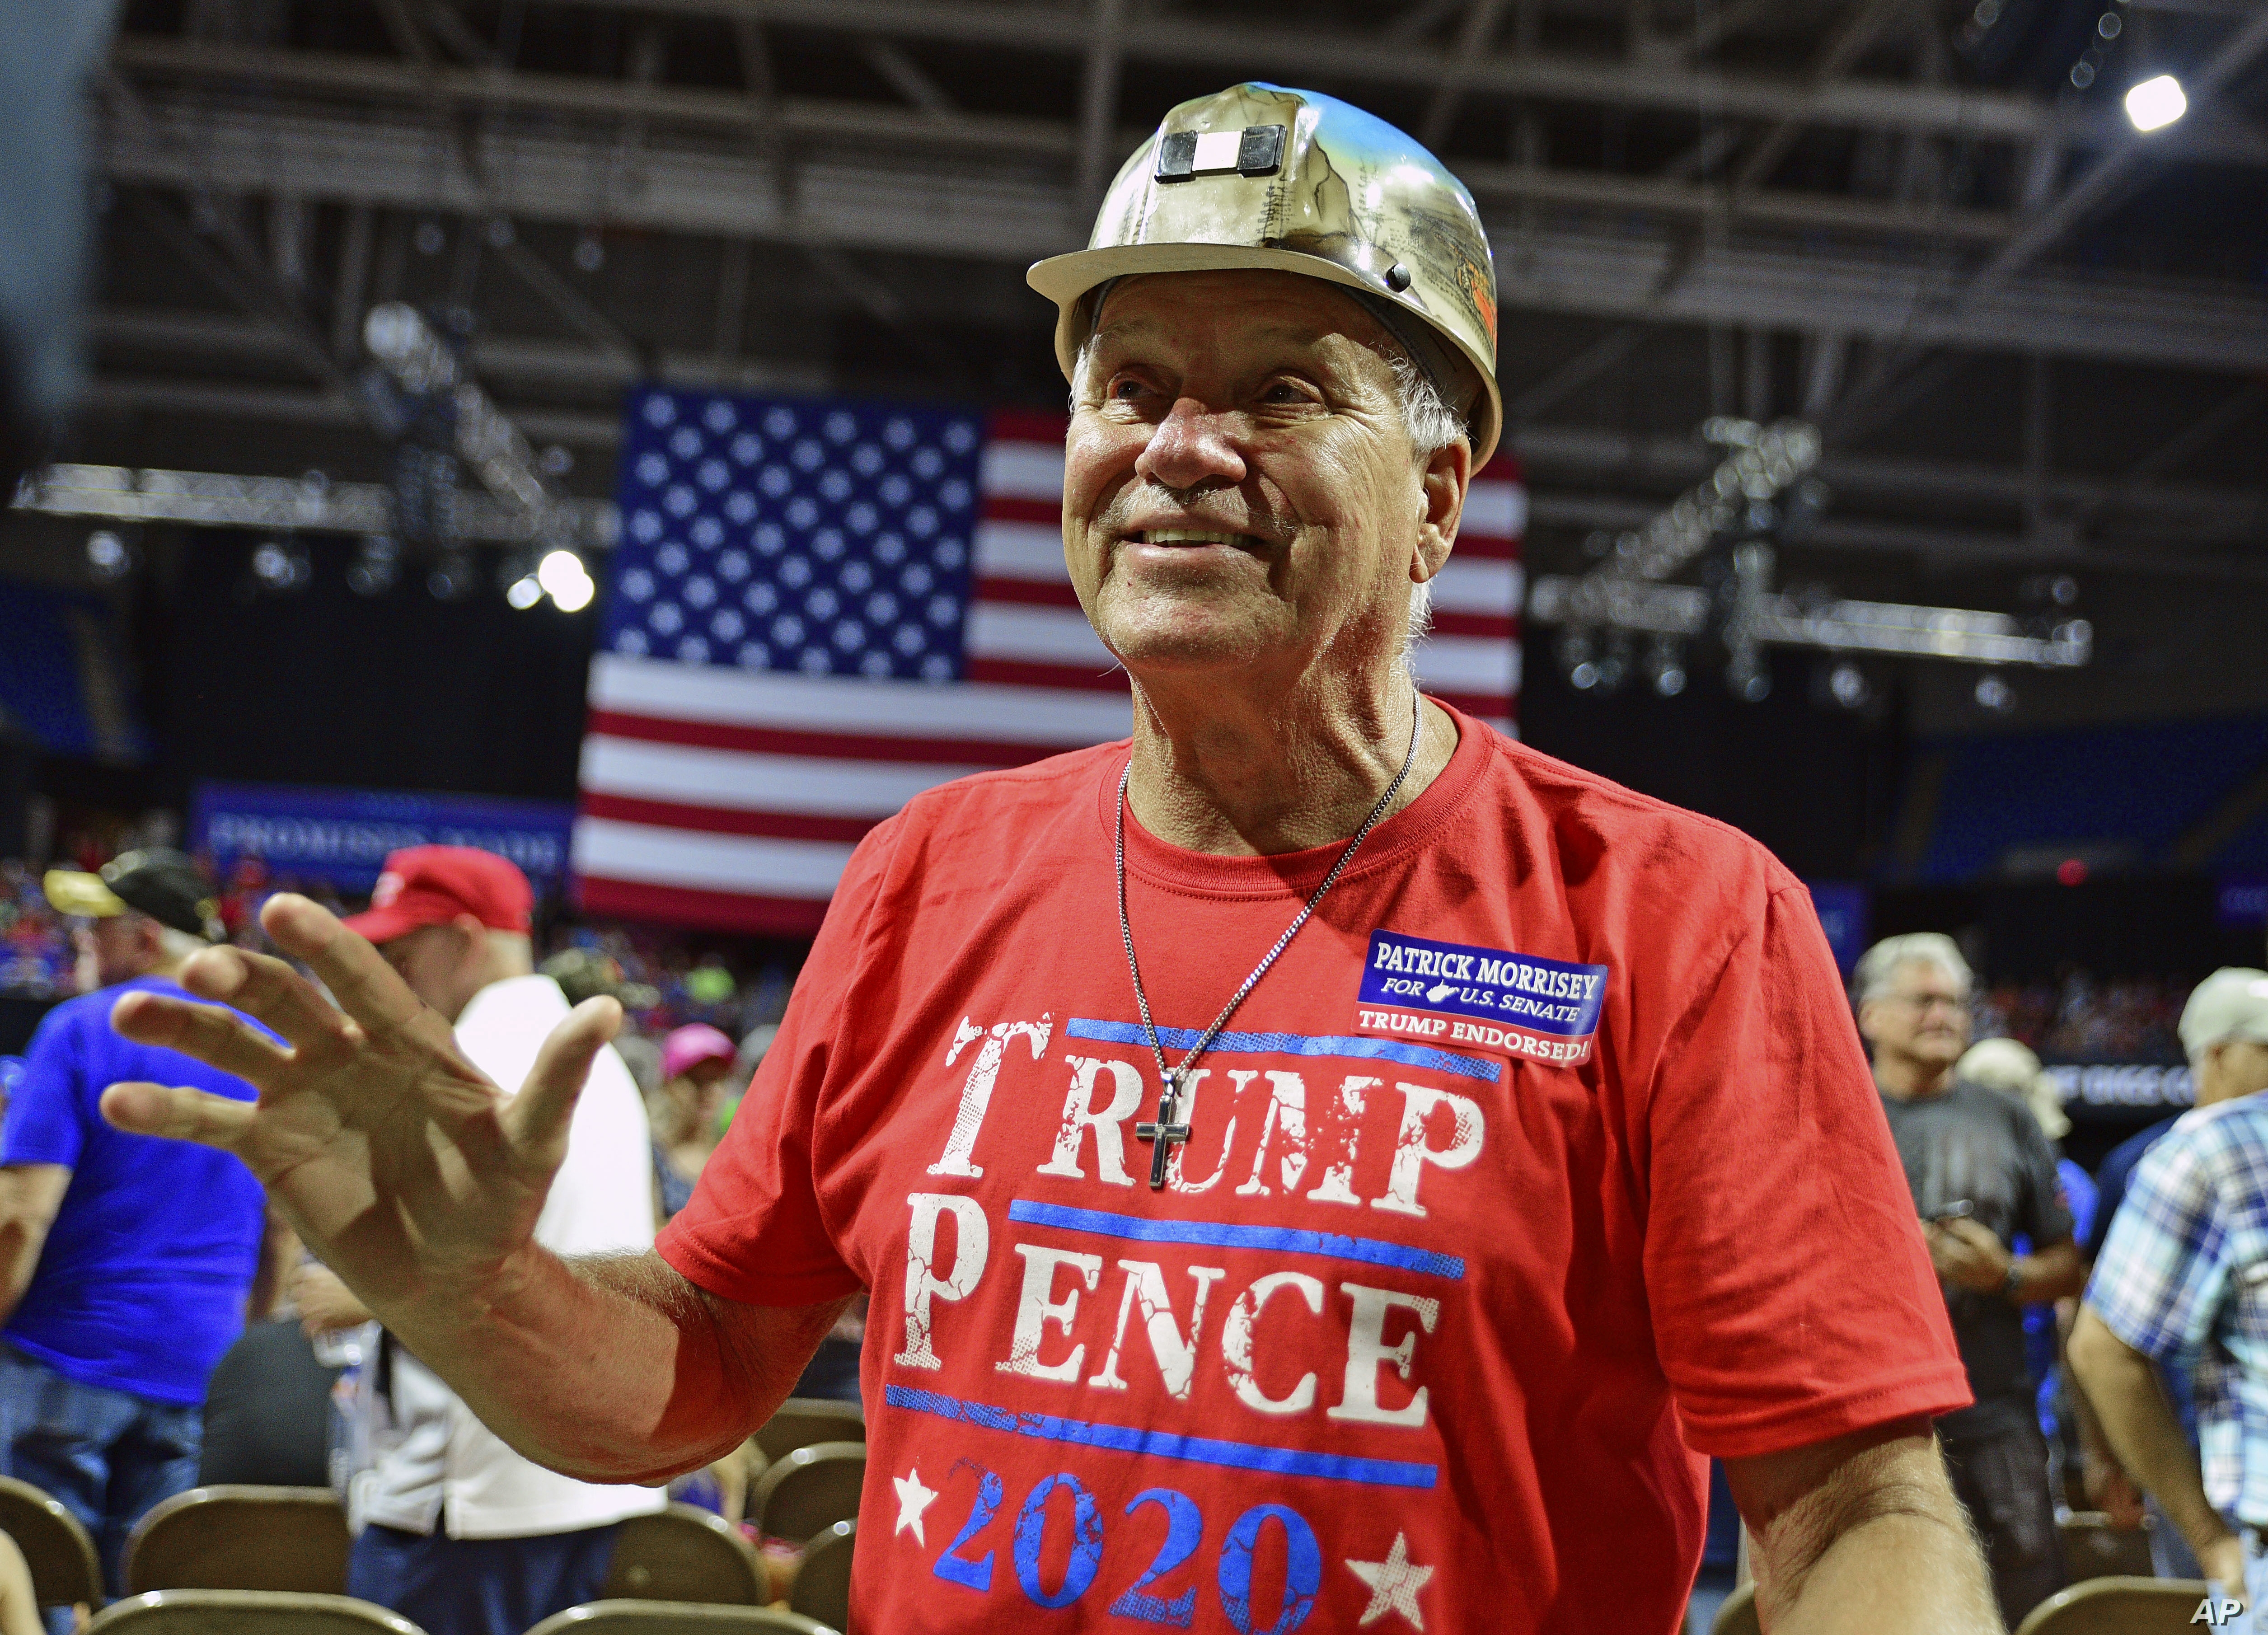 Trump supporter John Berta, of Oceana, W.Va., a retired coal miner, waves to the crowd at a rally with President Donald Trump, Tuesday, Aug. 21, 2018 at the Civic Center in Charleston W.Va. (AP Photo/Tyler Evert)